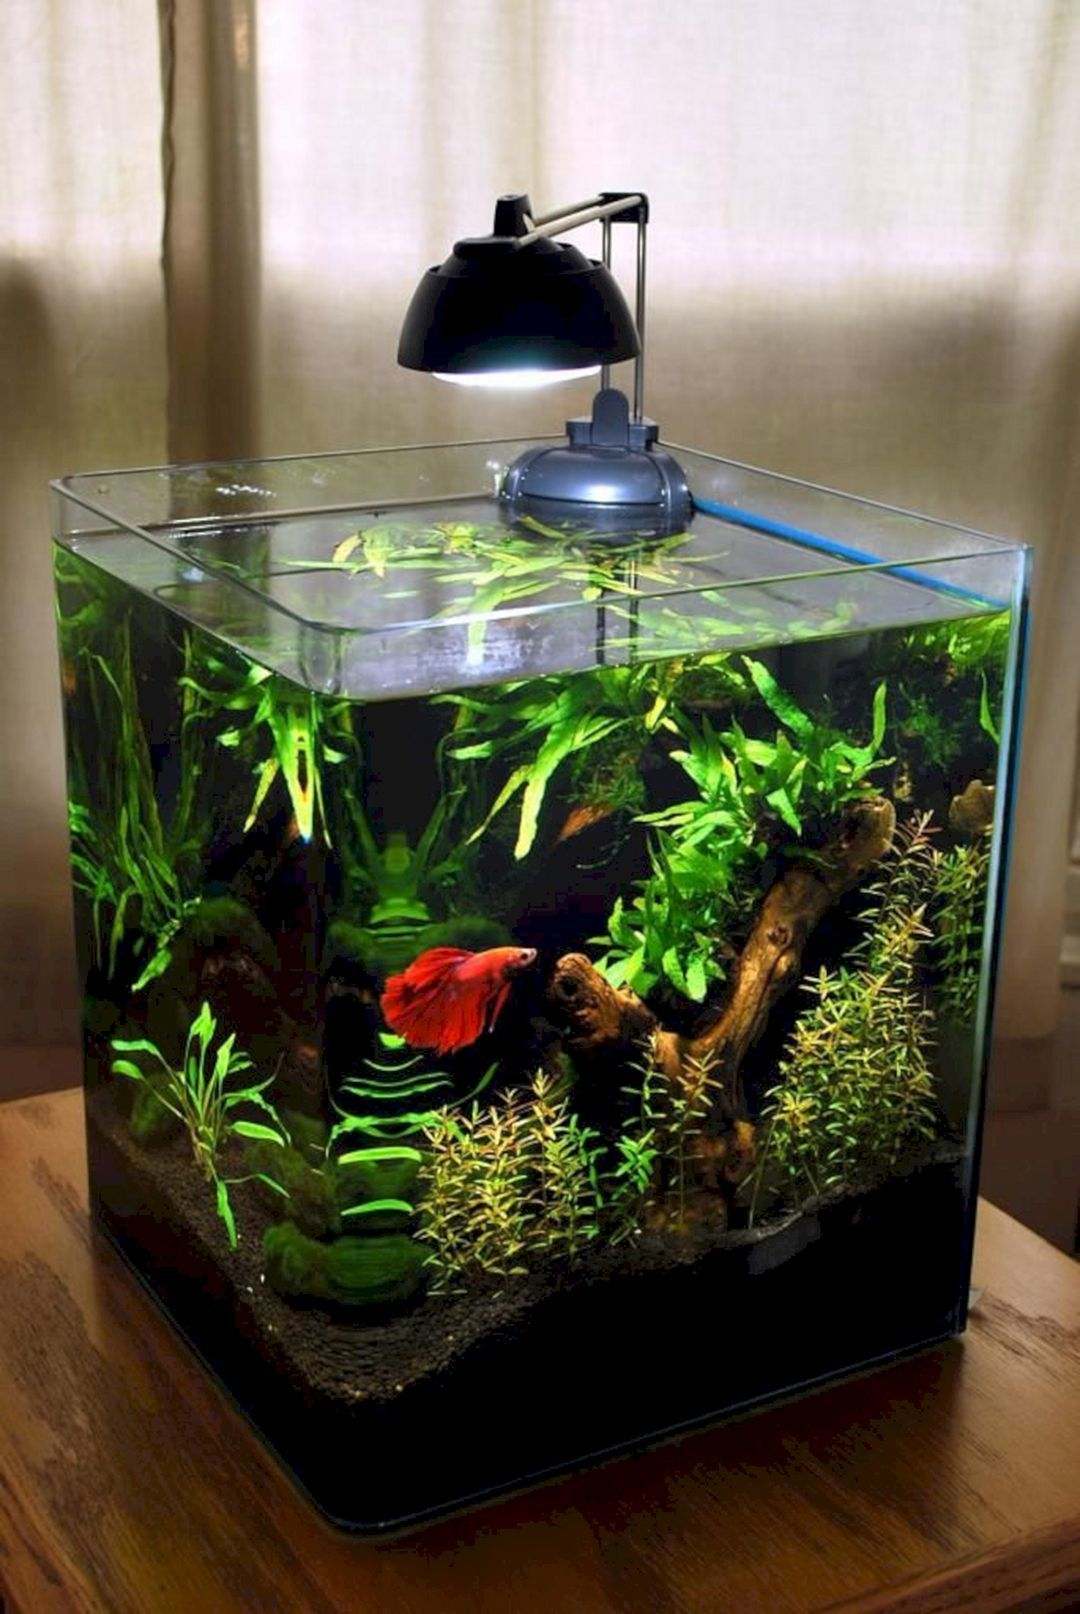 7 Beautiful Small Aquarium Ideas To Increase Your Home ...